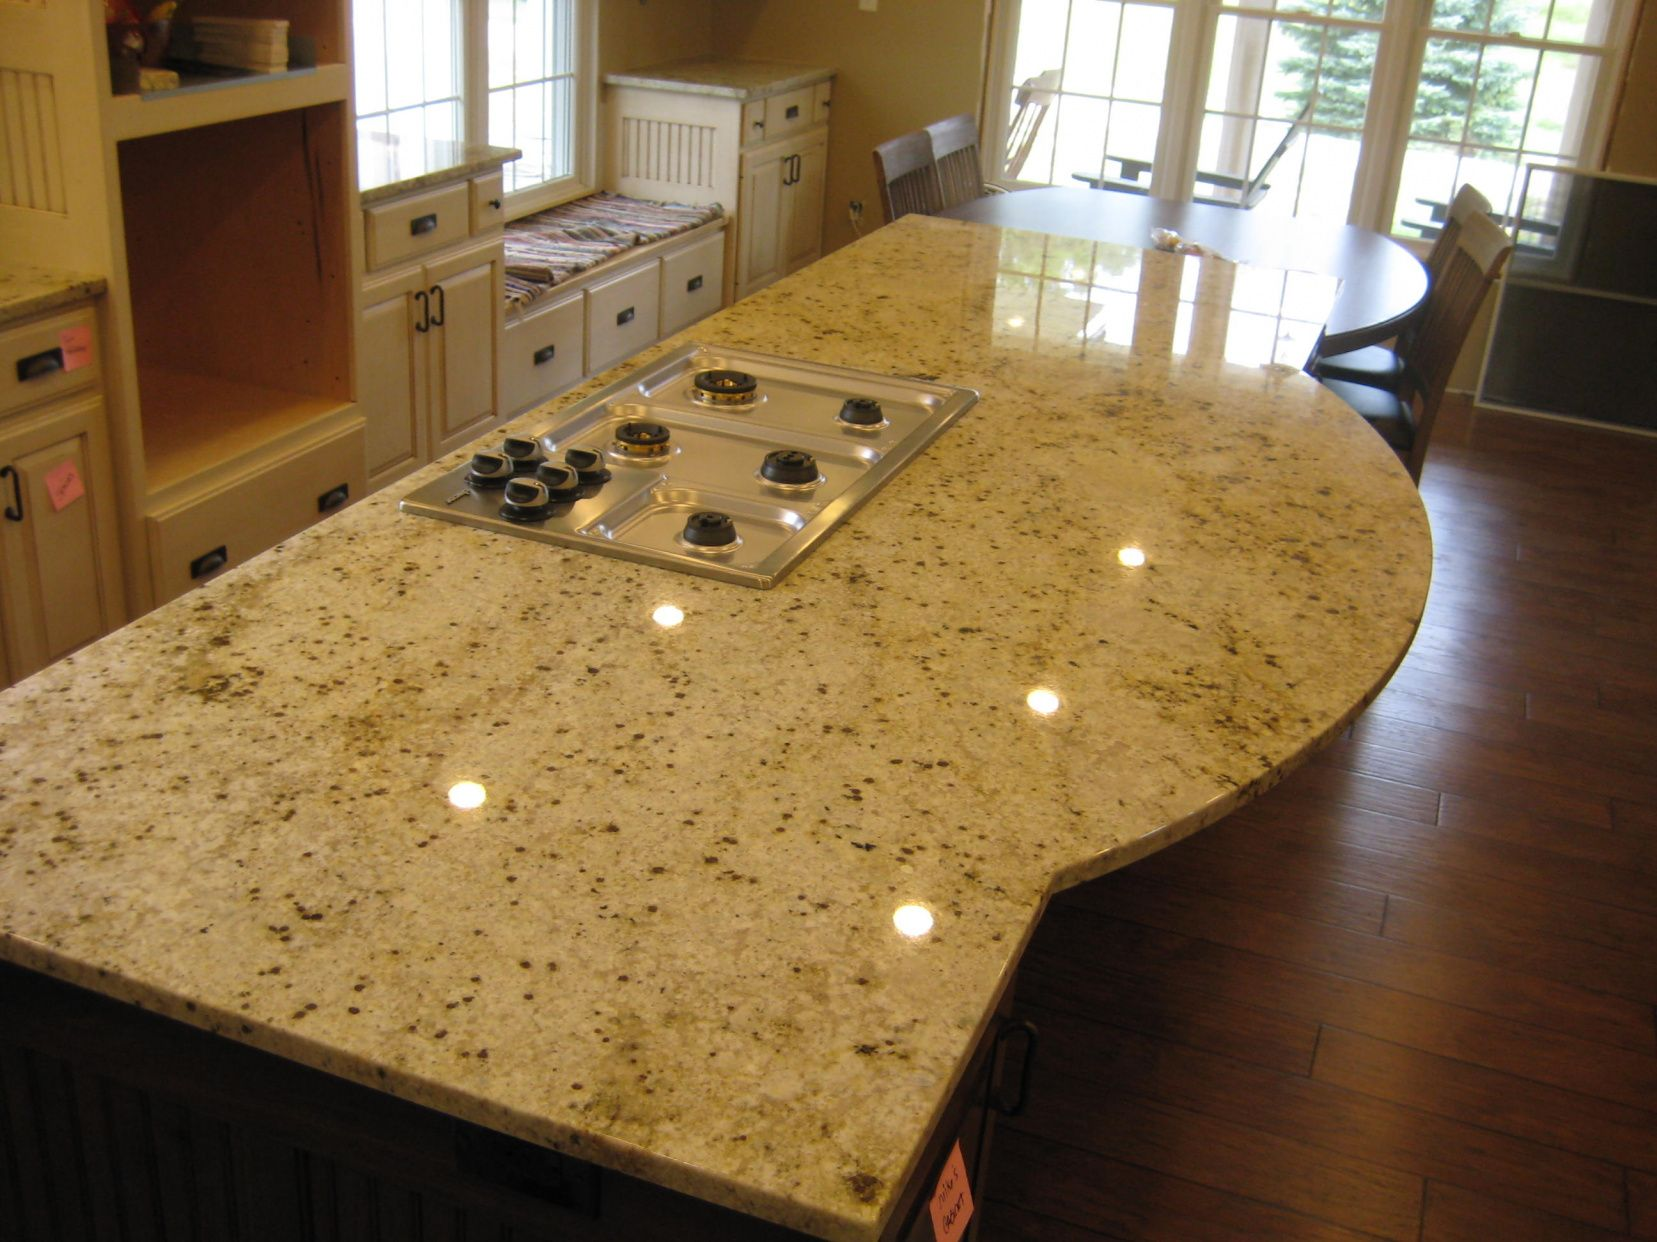 Merveilleux 50+ Rome Granite Countertops   Corner Kitchen Cupboard Ideas Check More At  Http:/